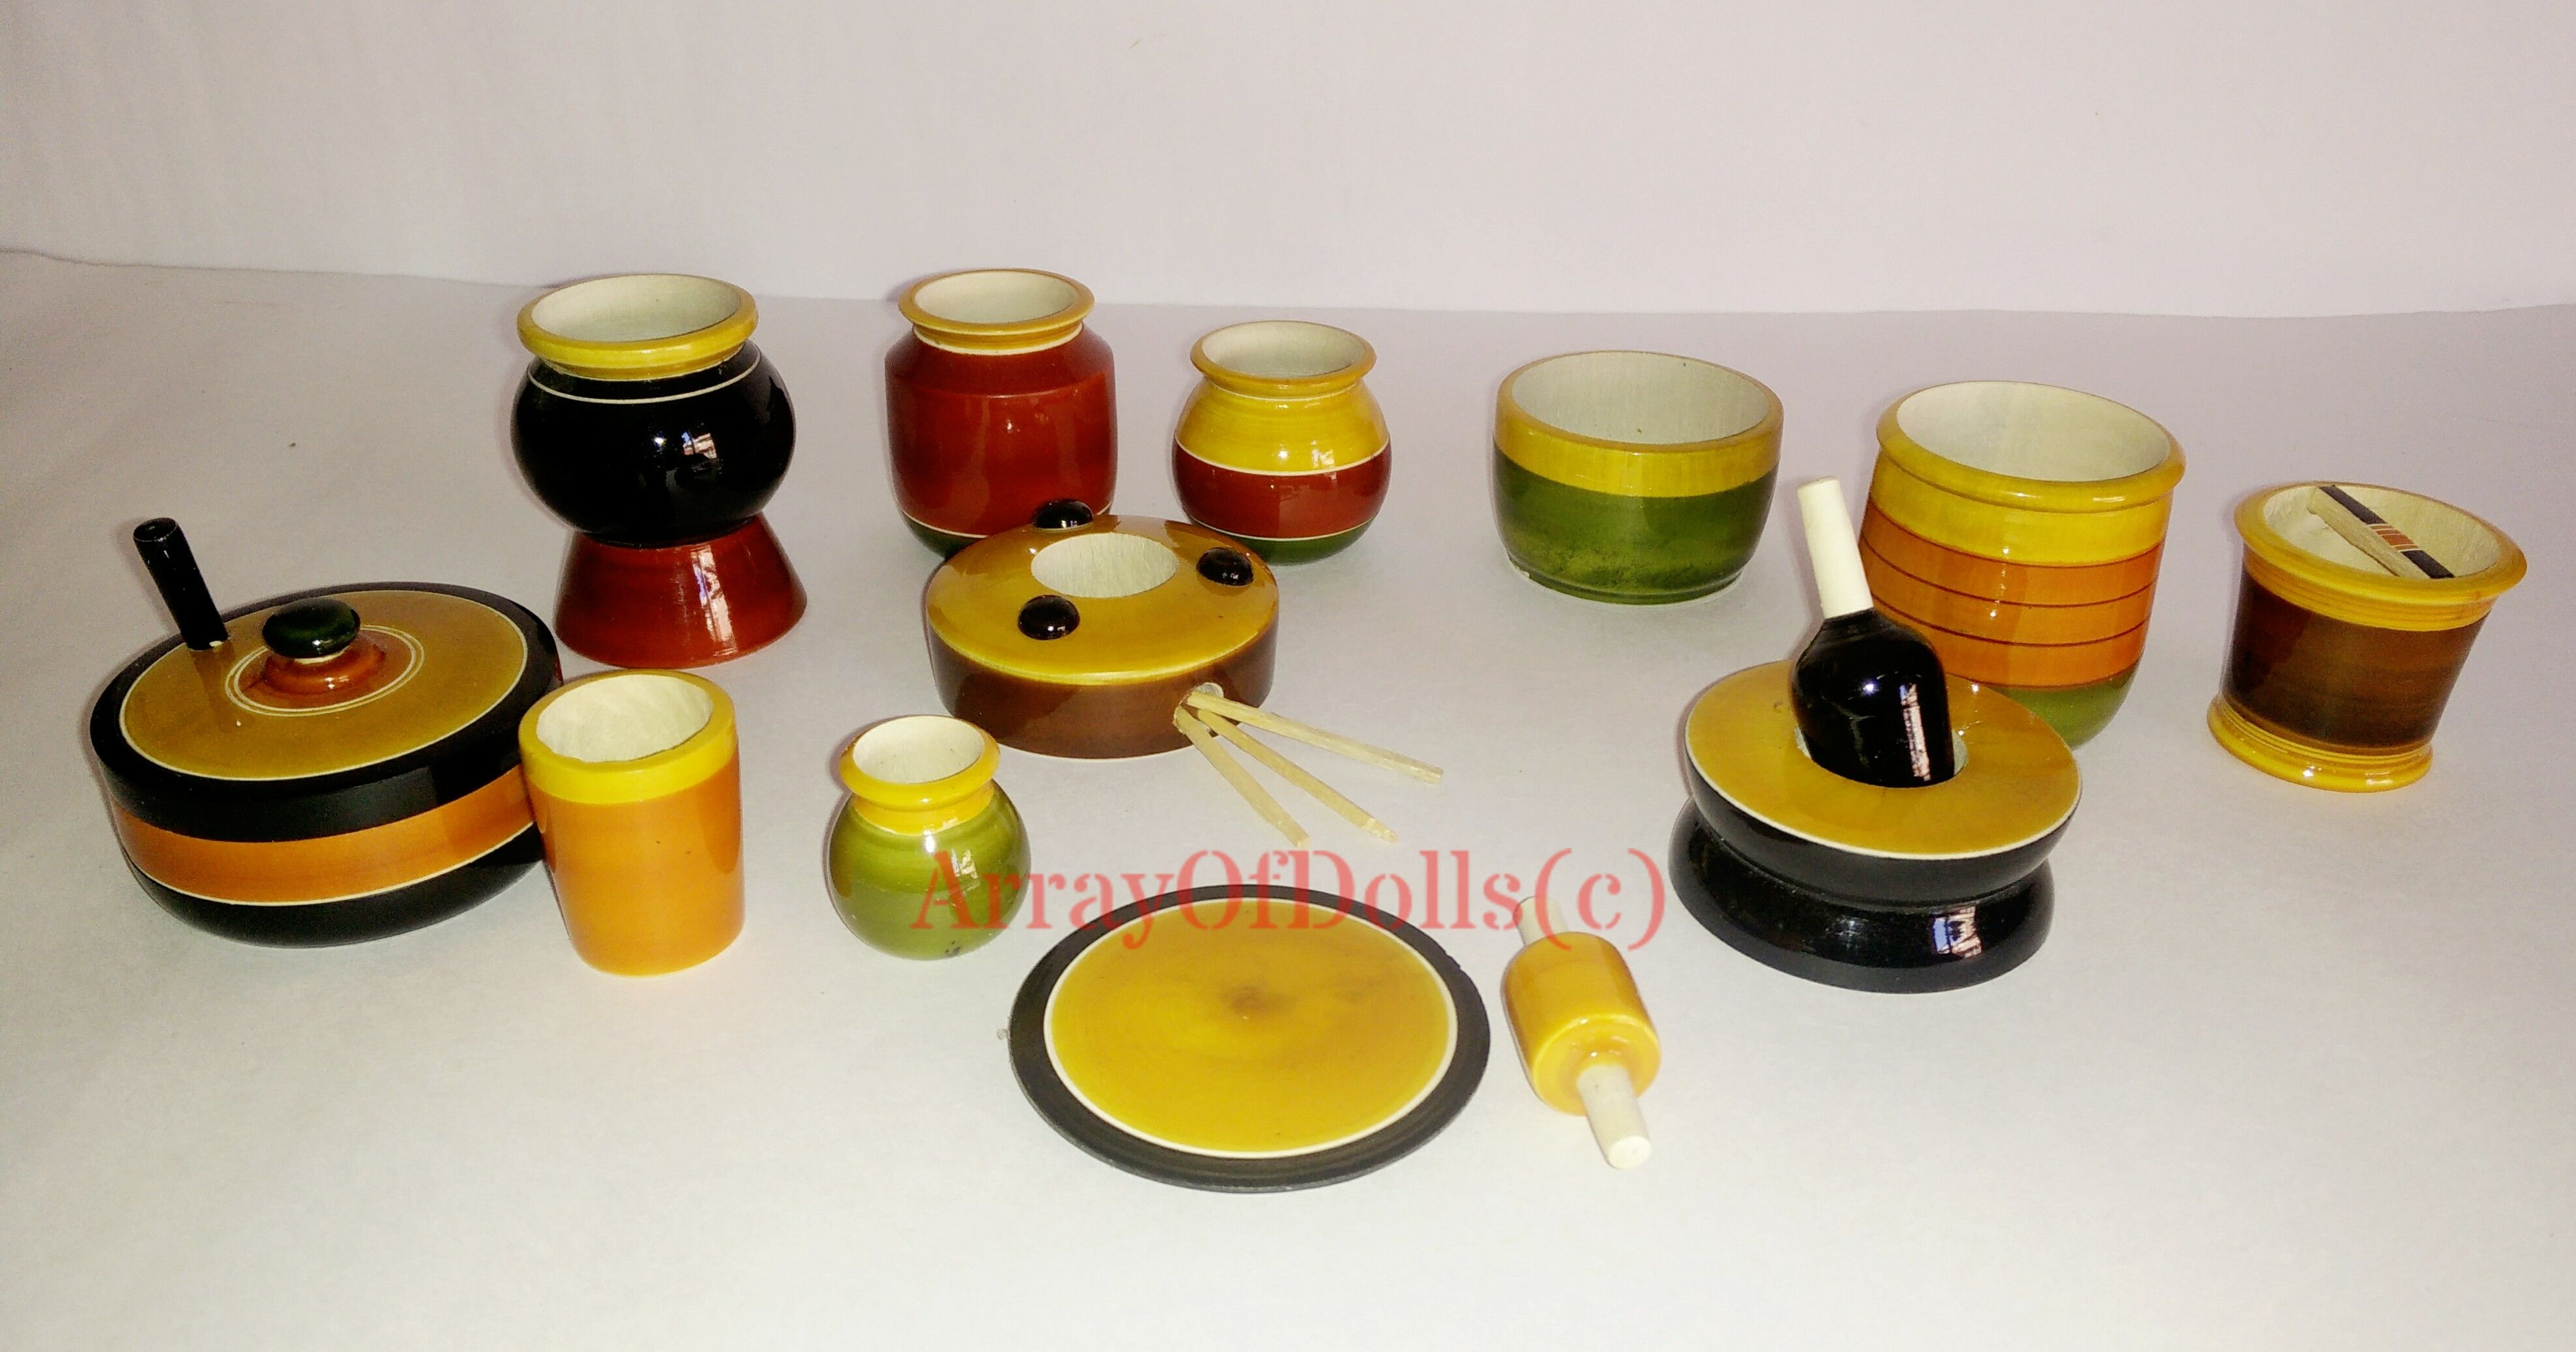 Kitchen set Rs.450 plus shipping 9242451273. Wooden